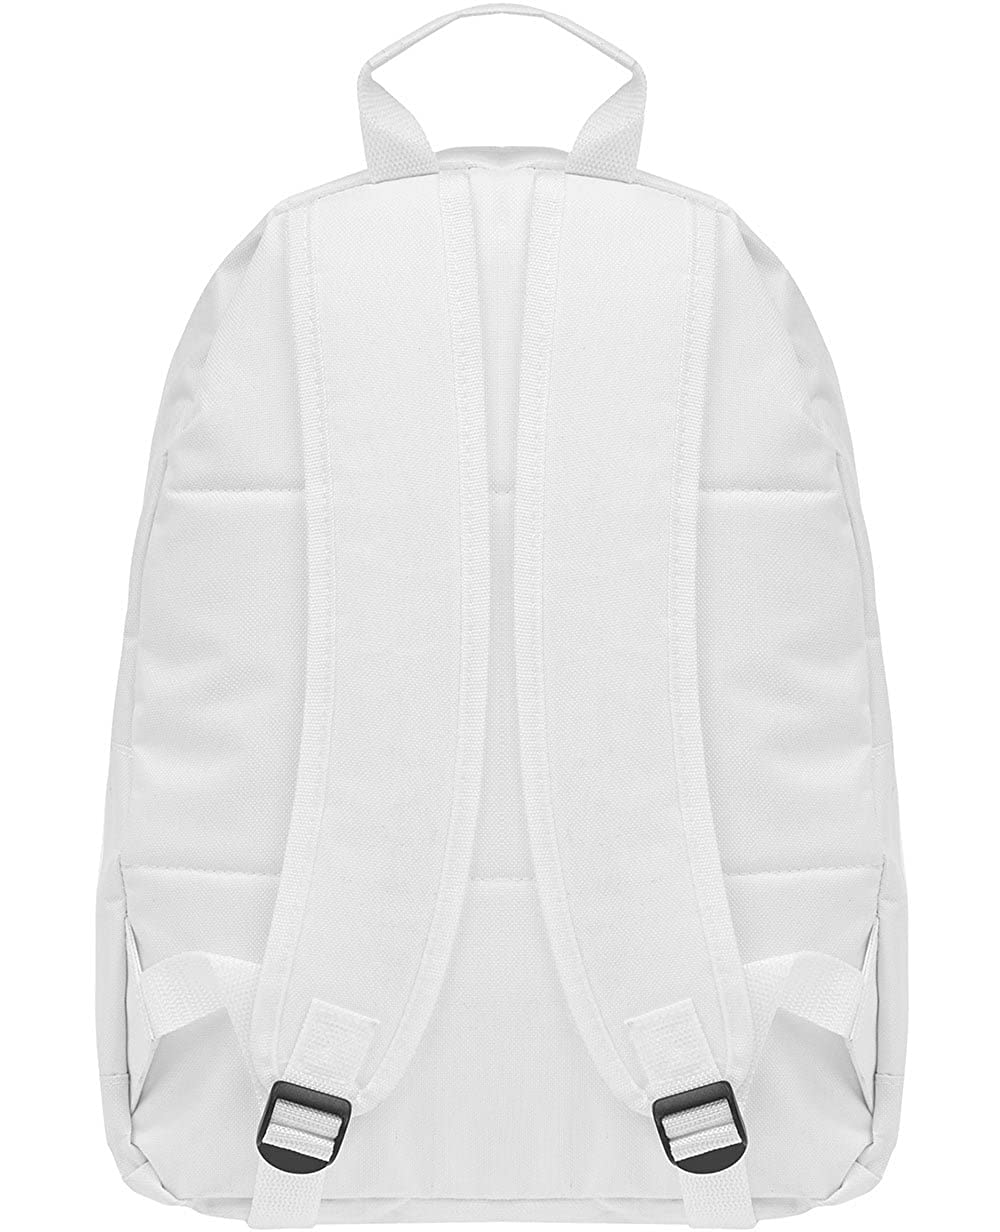 9df8b1def1 Twisted Soul Mens White Coded Logo Rucksack Backpack Carrier Sports Casual  Bag  Amazon.co.uk  Shoes   Bags